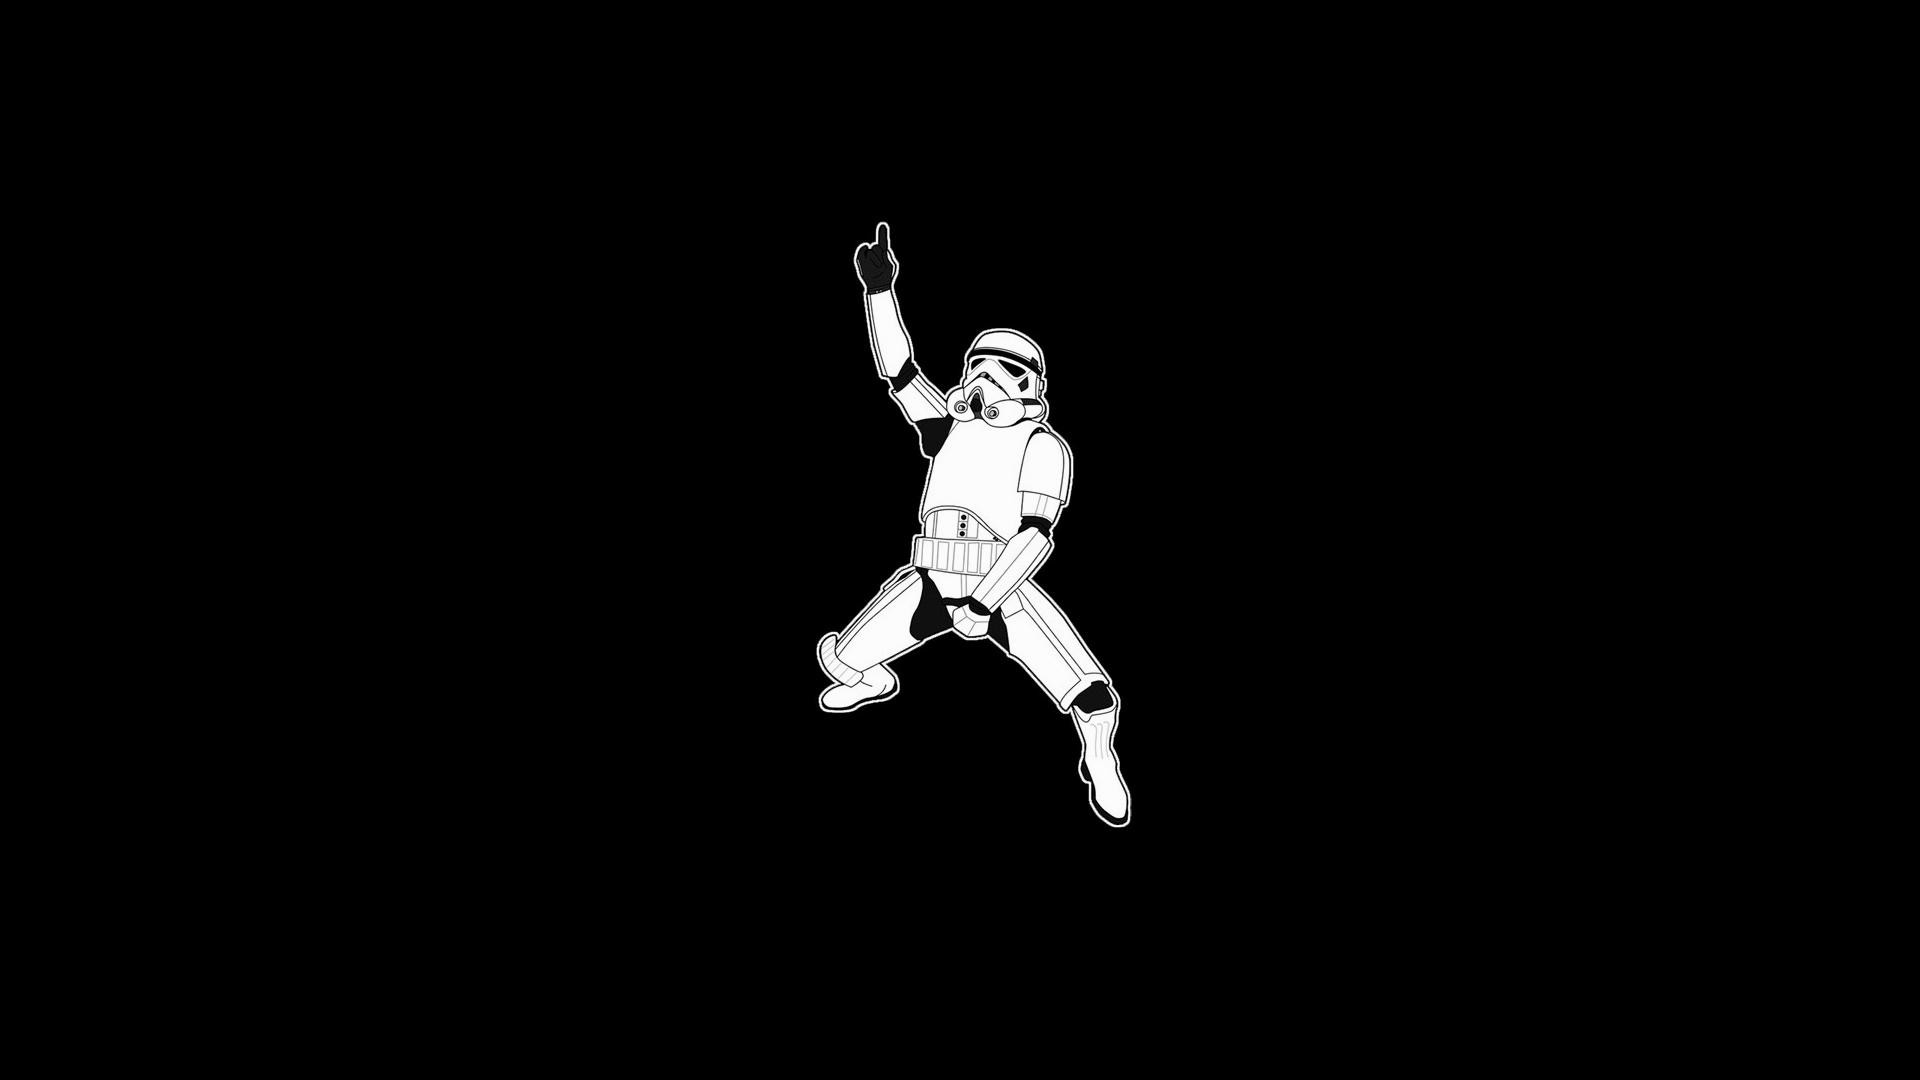 1920x1080 wallpaper.wiki-Stormtrooper-Wallpaper-HD-For-Desktop-PIC